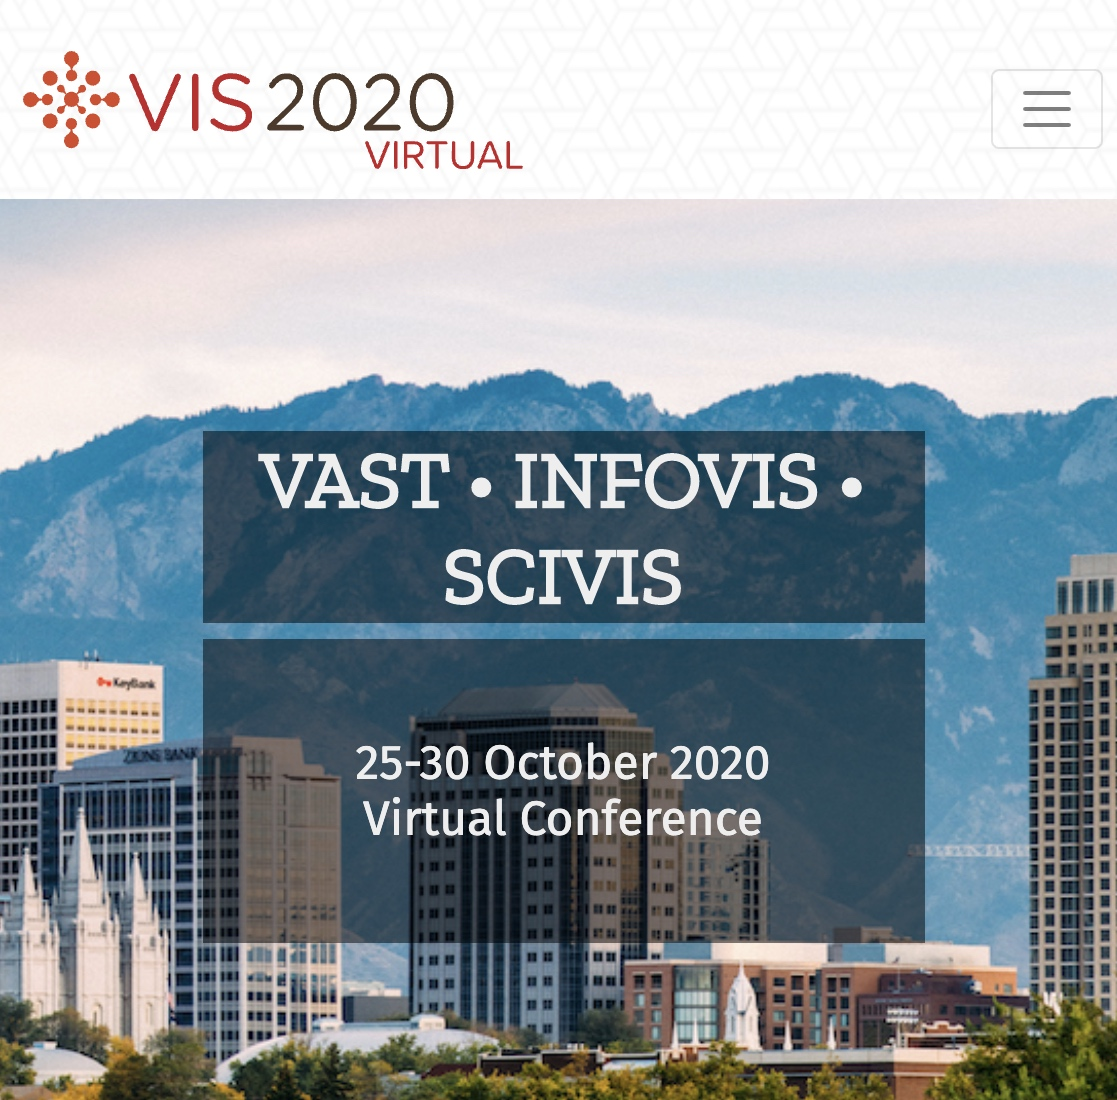 Virtual IEEE VIS 2020 -- Conference on Visualization.